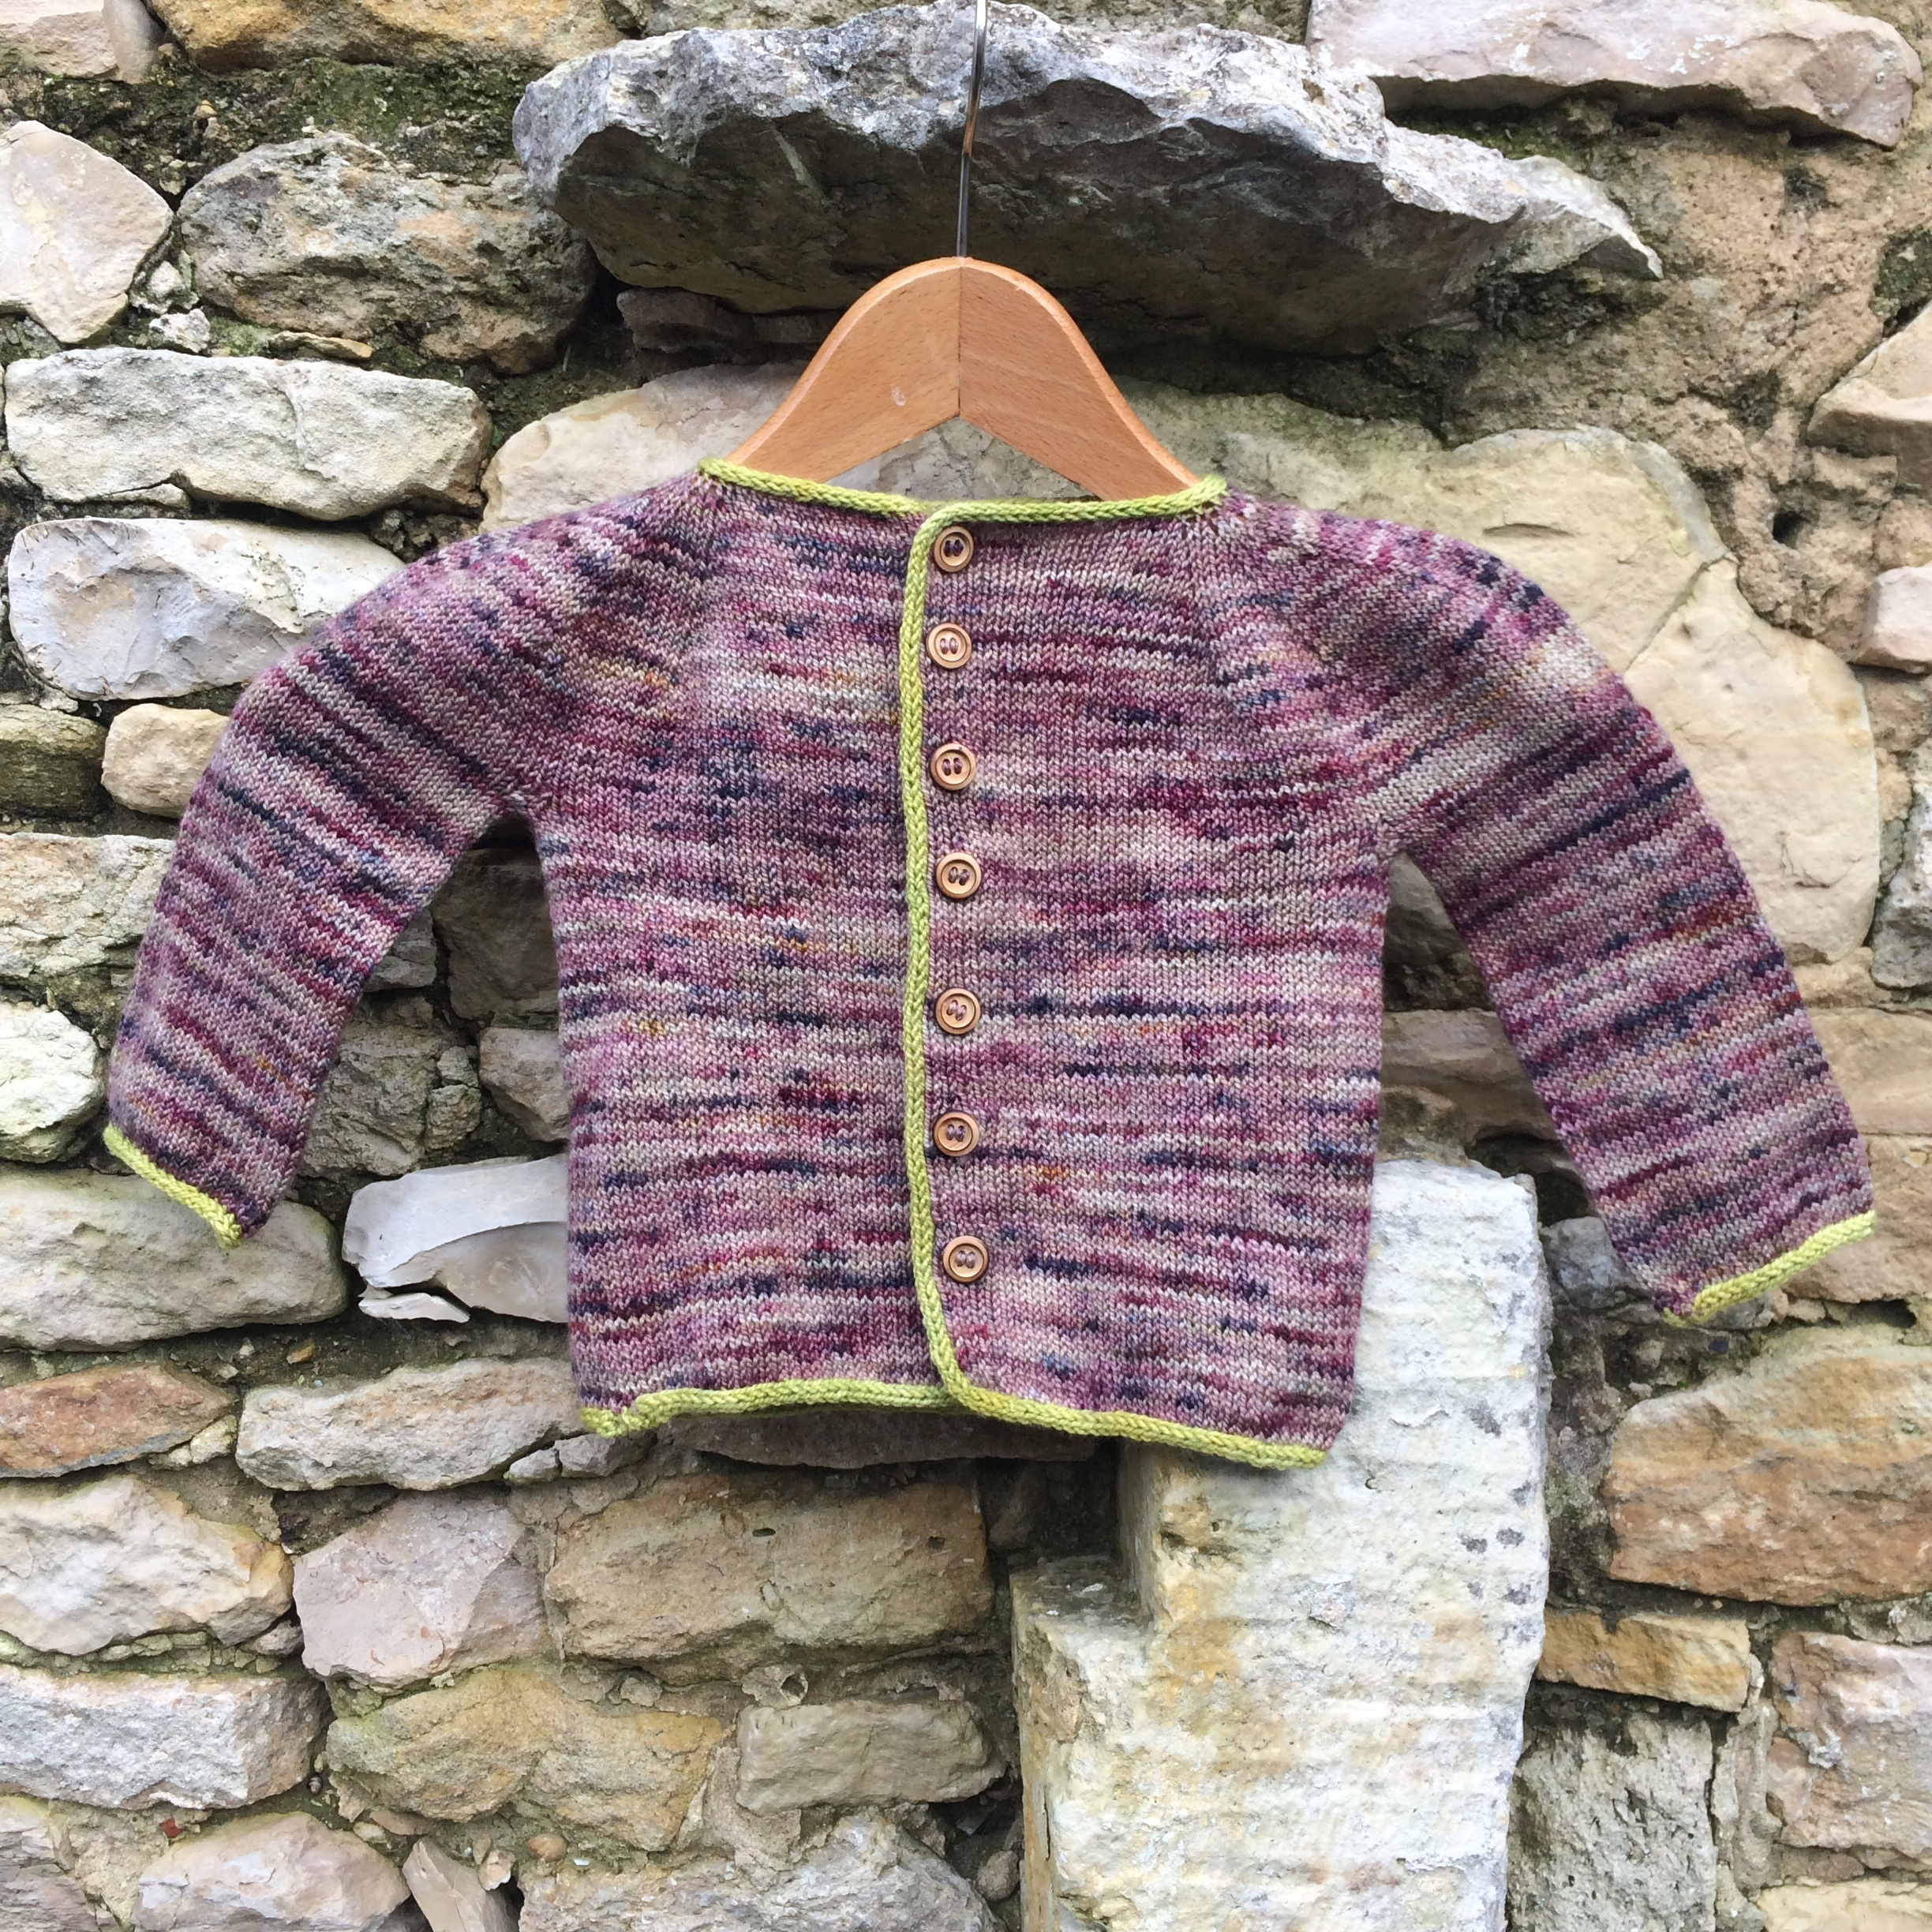 Clemence - I am really very happy of the project I knitted with your wondurful wool and great colors ! I discovered your yarn at downtown yarn shop in New York City , took them back to Paris (France) knit this perfect pattern Eole for Jeanne my 1st grand daughter and ... send her the sweater in Geneva !!!So your yarn travelled a lot